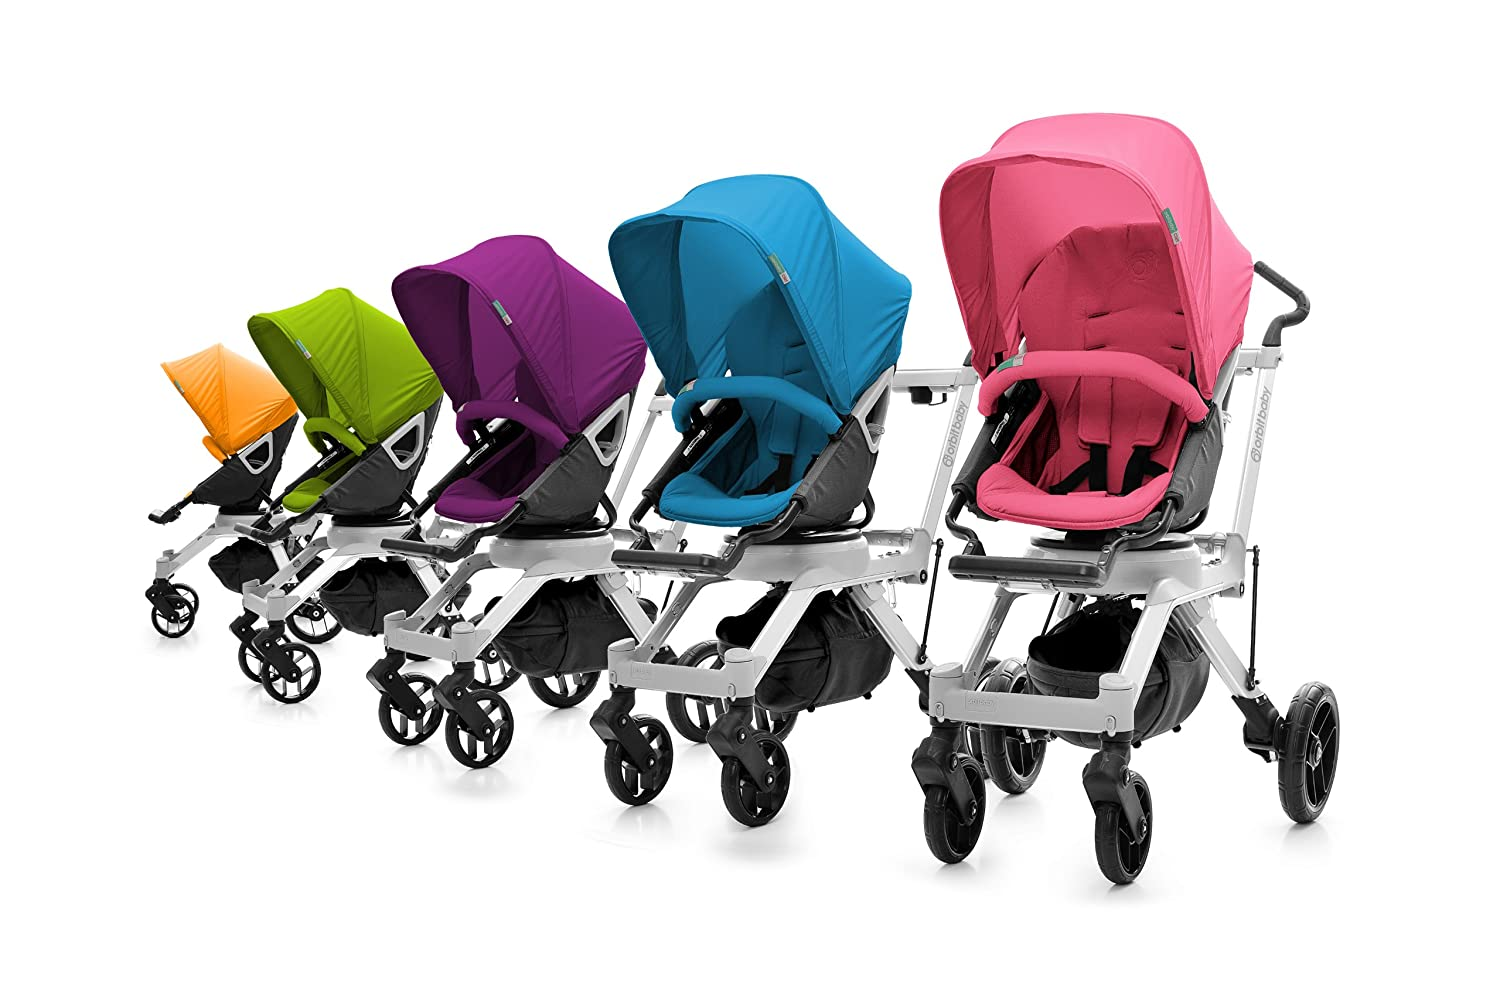 Amazon.com : Orbit Baby Color Pack for Stroller Seat G2, Khaki (Discontinued by Manufacturer) : Infant Car Seat Stroller Travel Systems : Baby